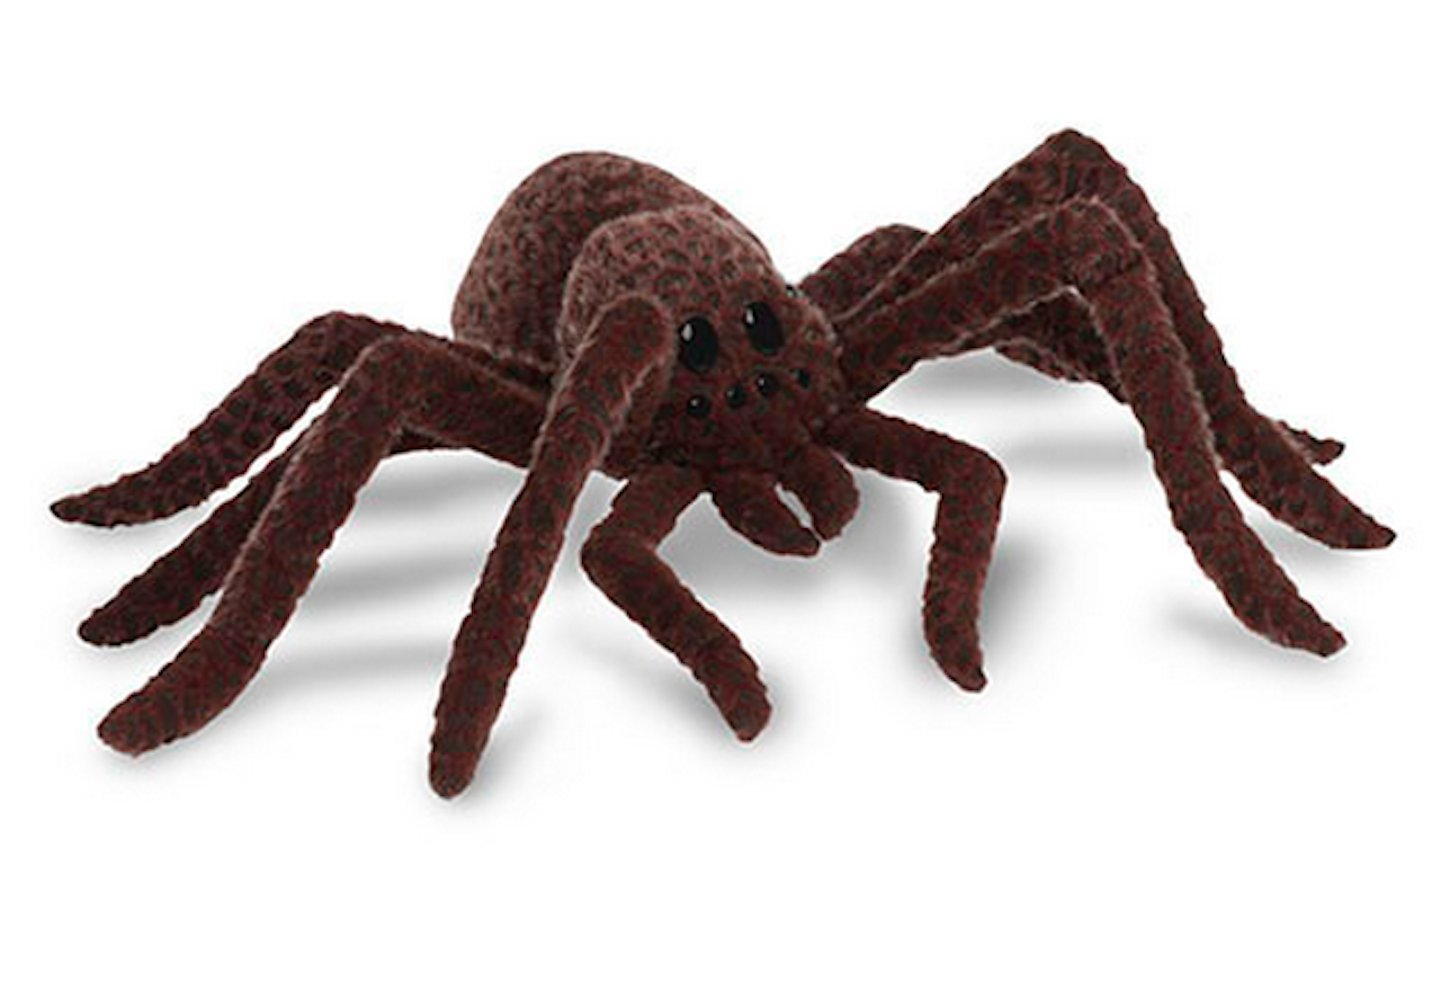 Amazon.com: Wizarding World of Harry Potter : 18 inch wide Stuffed Aragog the Acromantula Spider Plush Toy by Universal Studios: Toys & Games